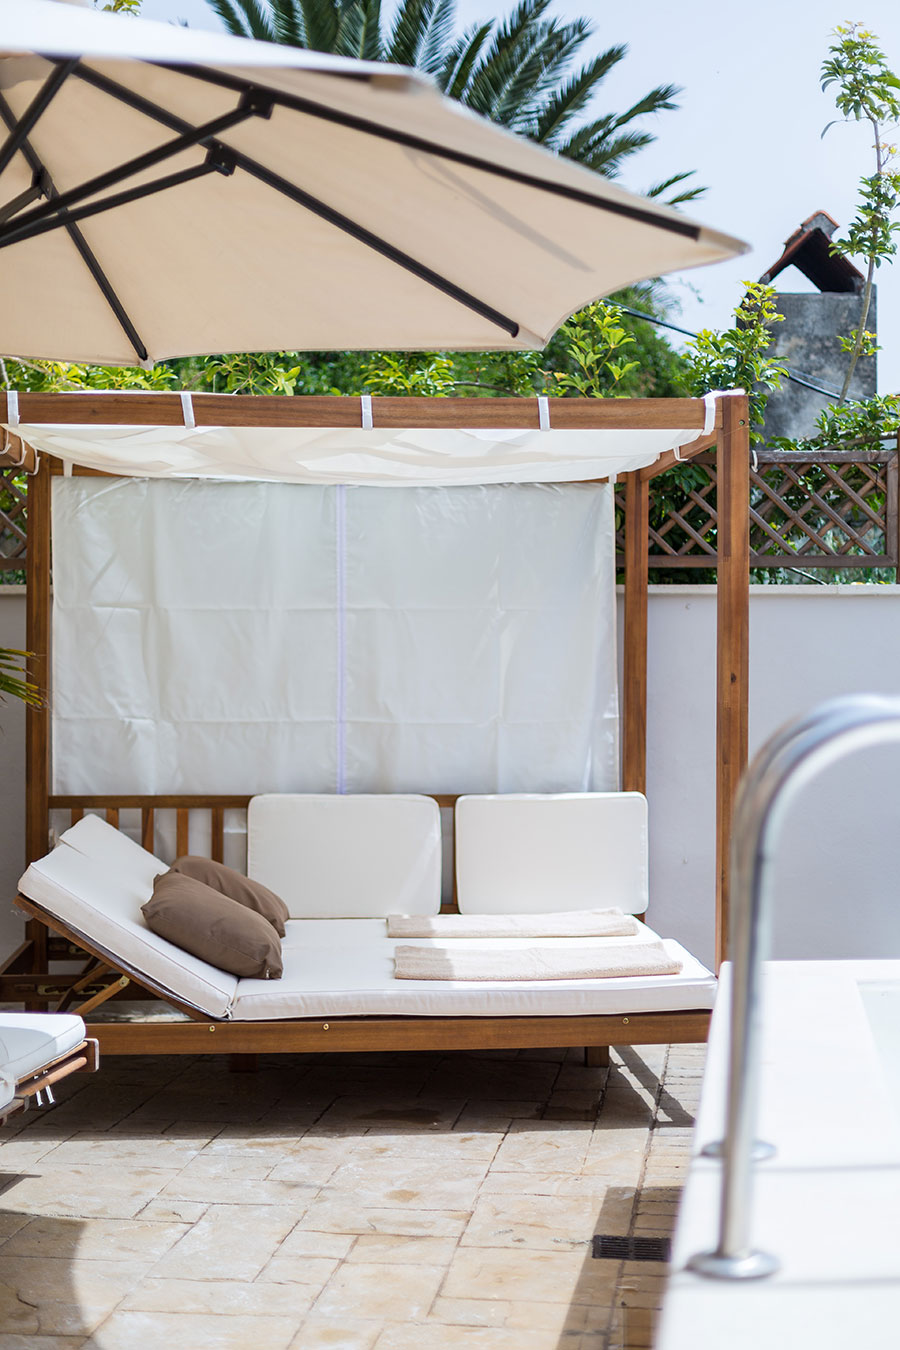 Outdoor - Gazebo bed added in 2016!